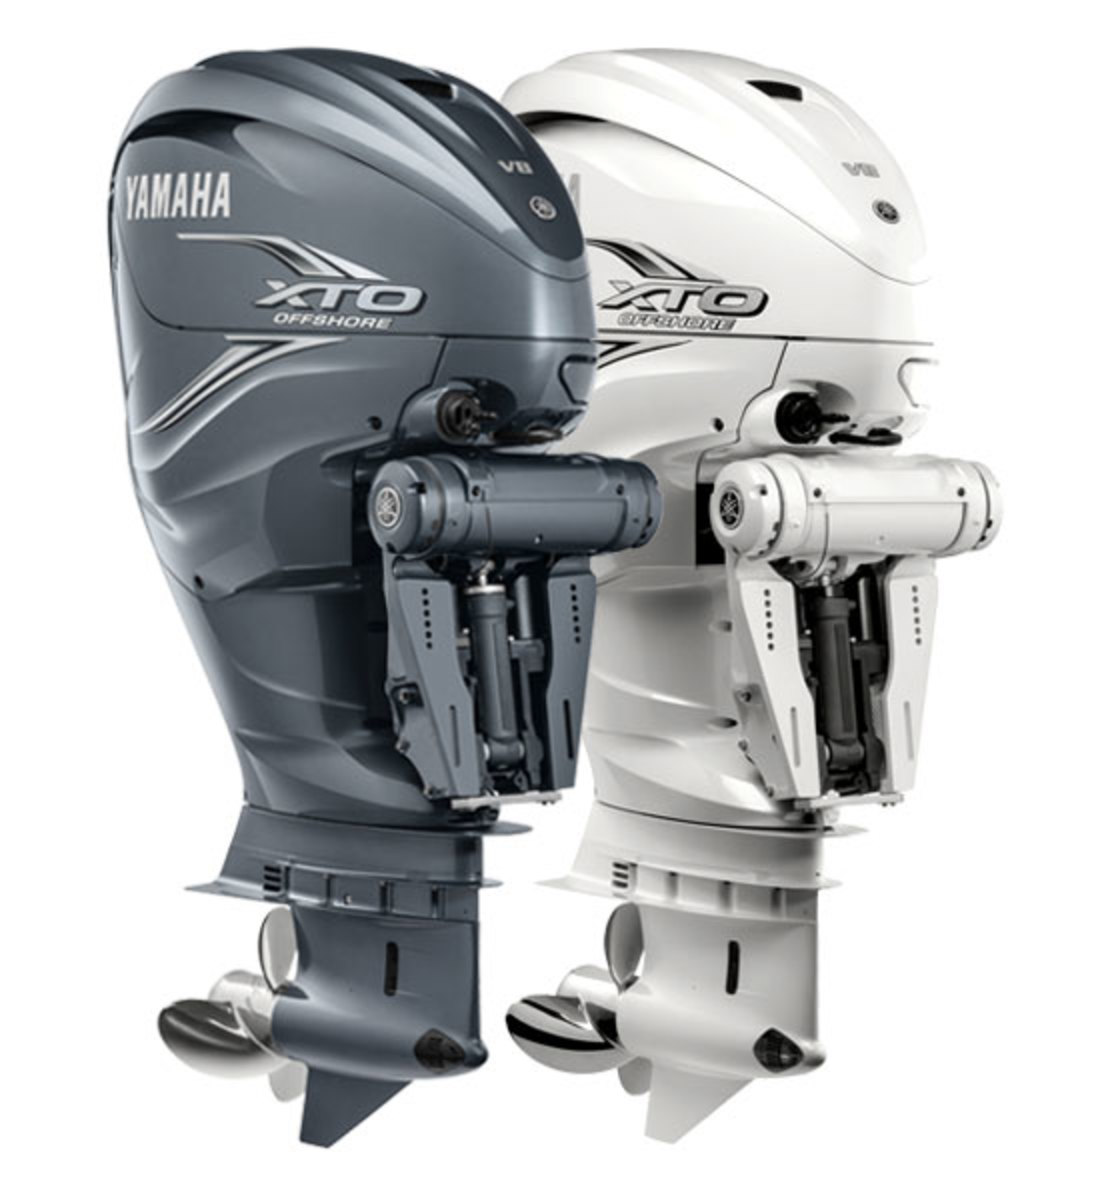 The 425-hp XTO Offshore is Yamaha's largest outboard.